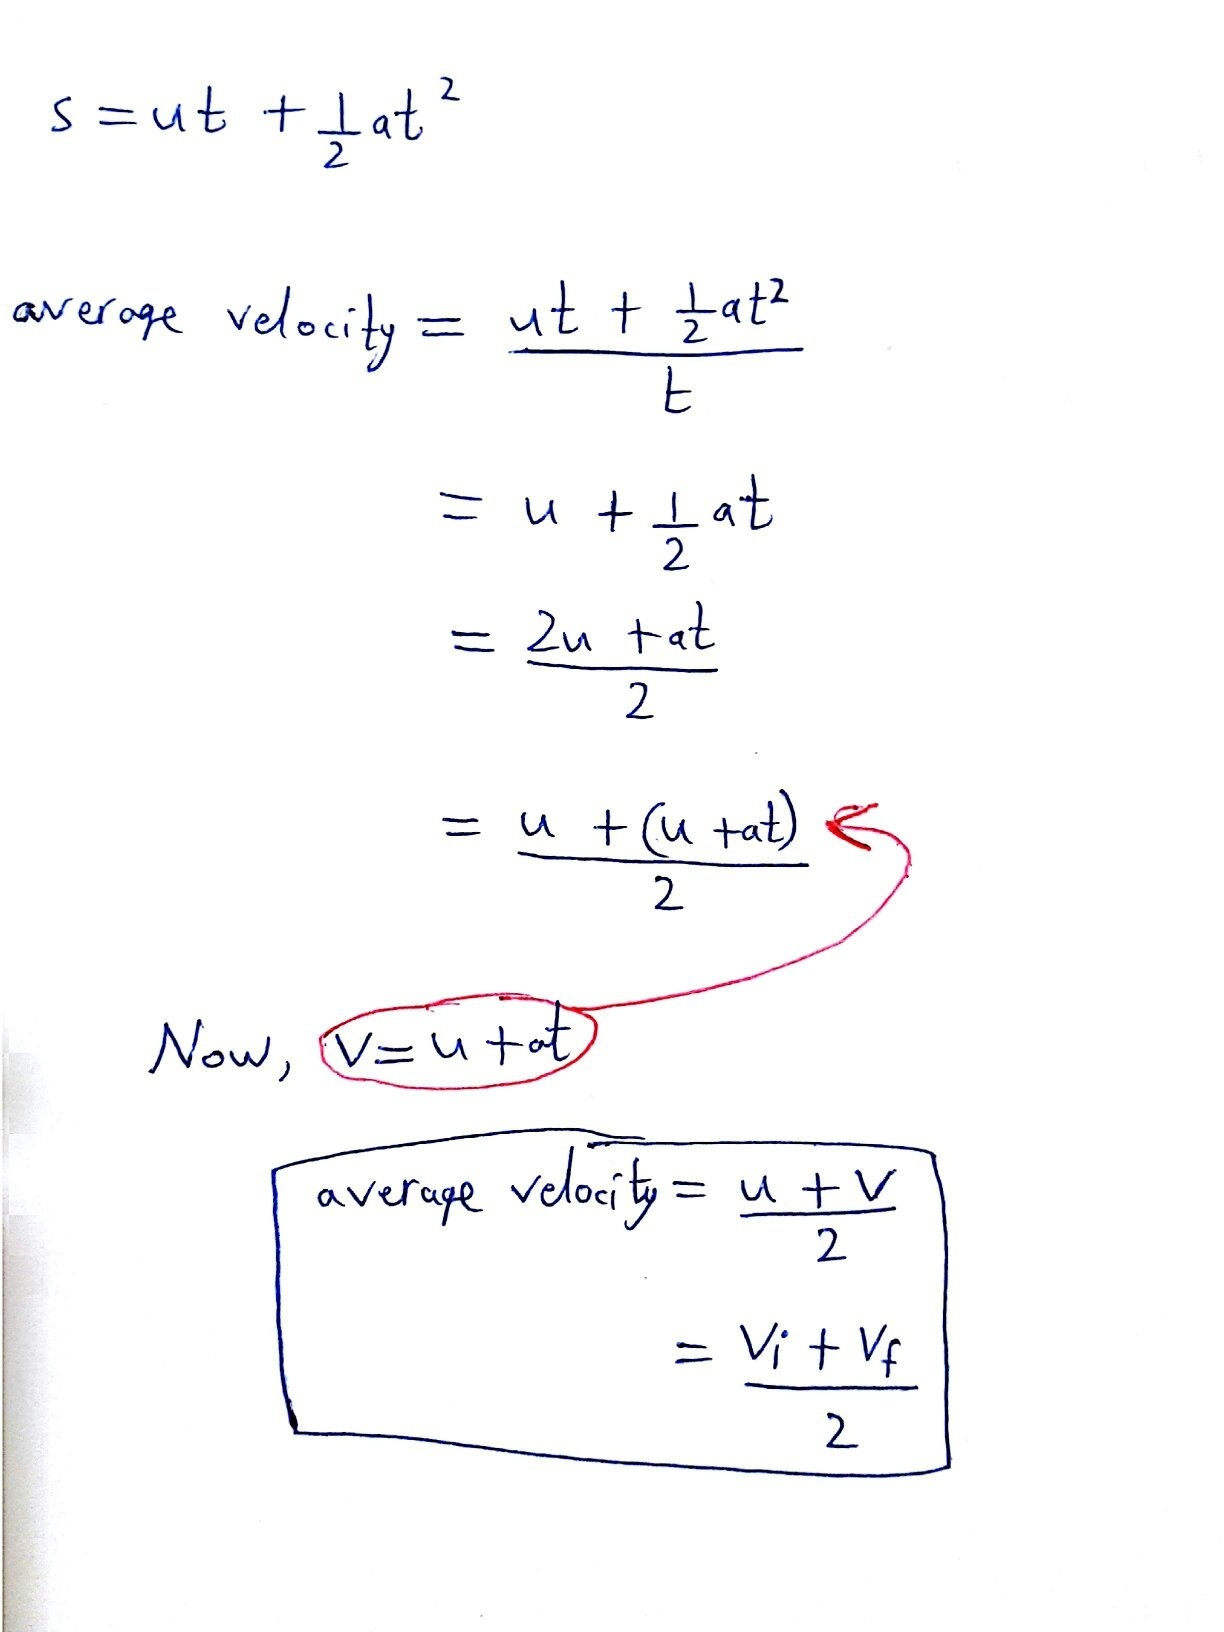 Why is the average velocity formula used in acceleration (Vf